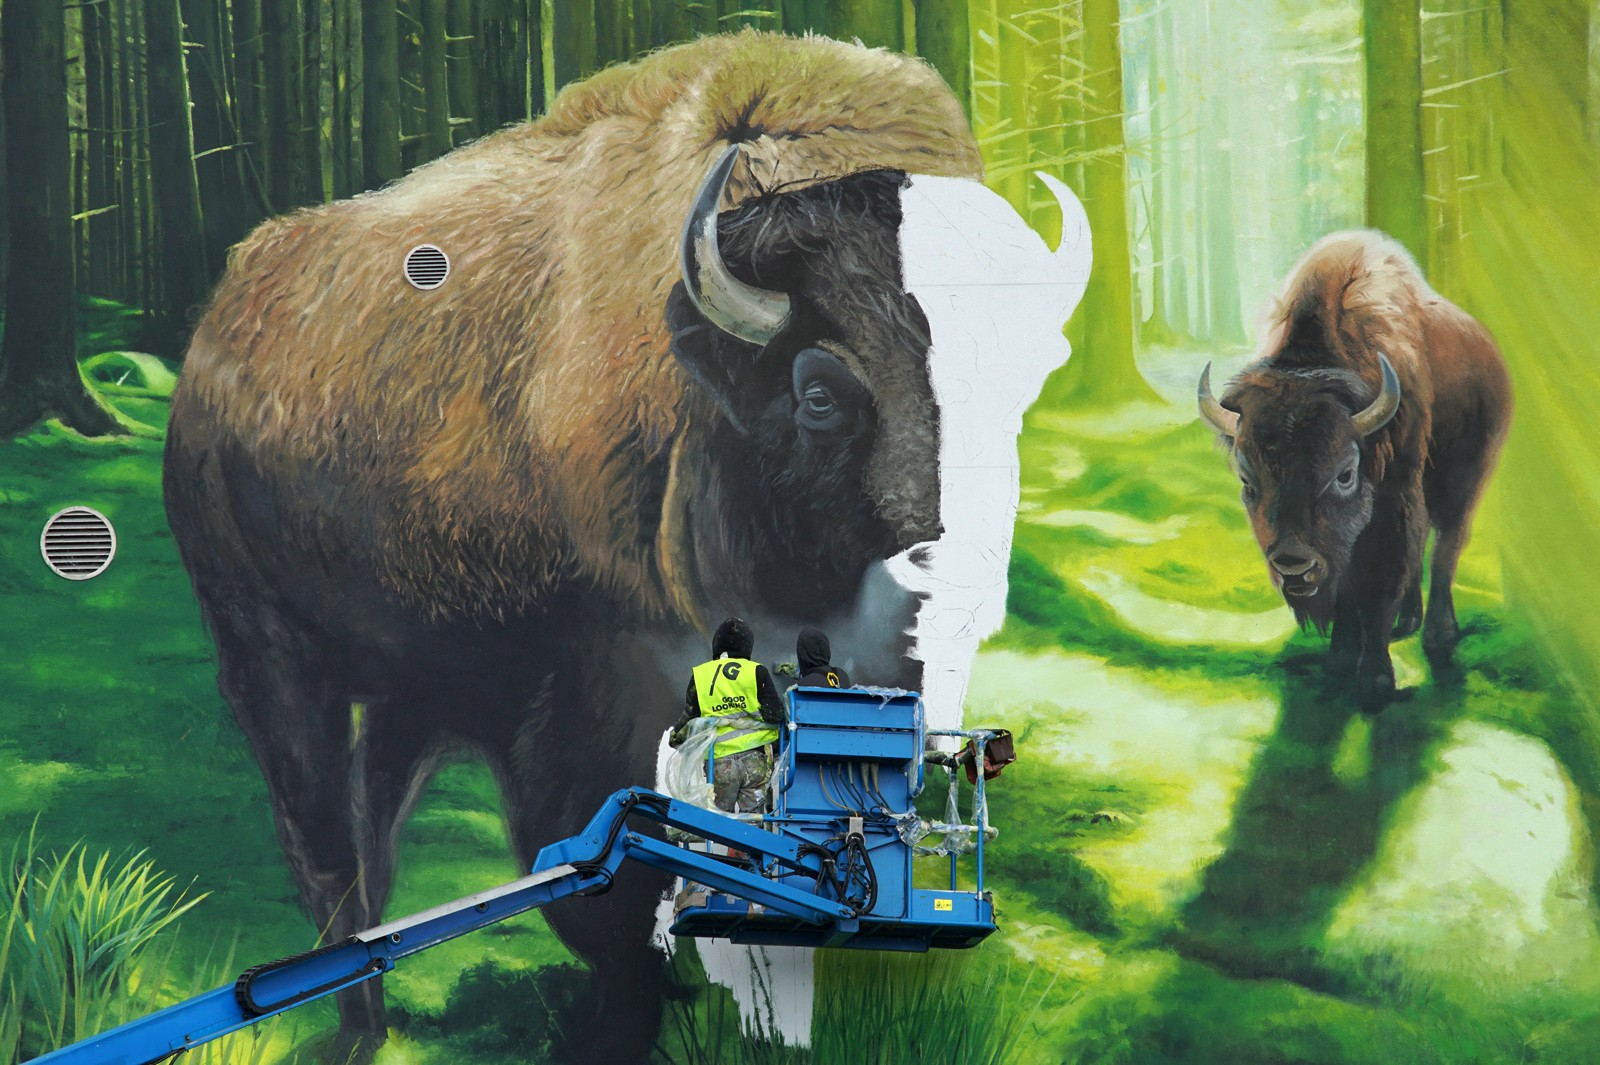 Hand painted European bison at Polmos factory in Bialystok on Elewatorska 20 street symbolizing Zubrowka brand vodka | Zubrowka | Portfolio